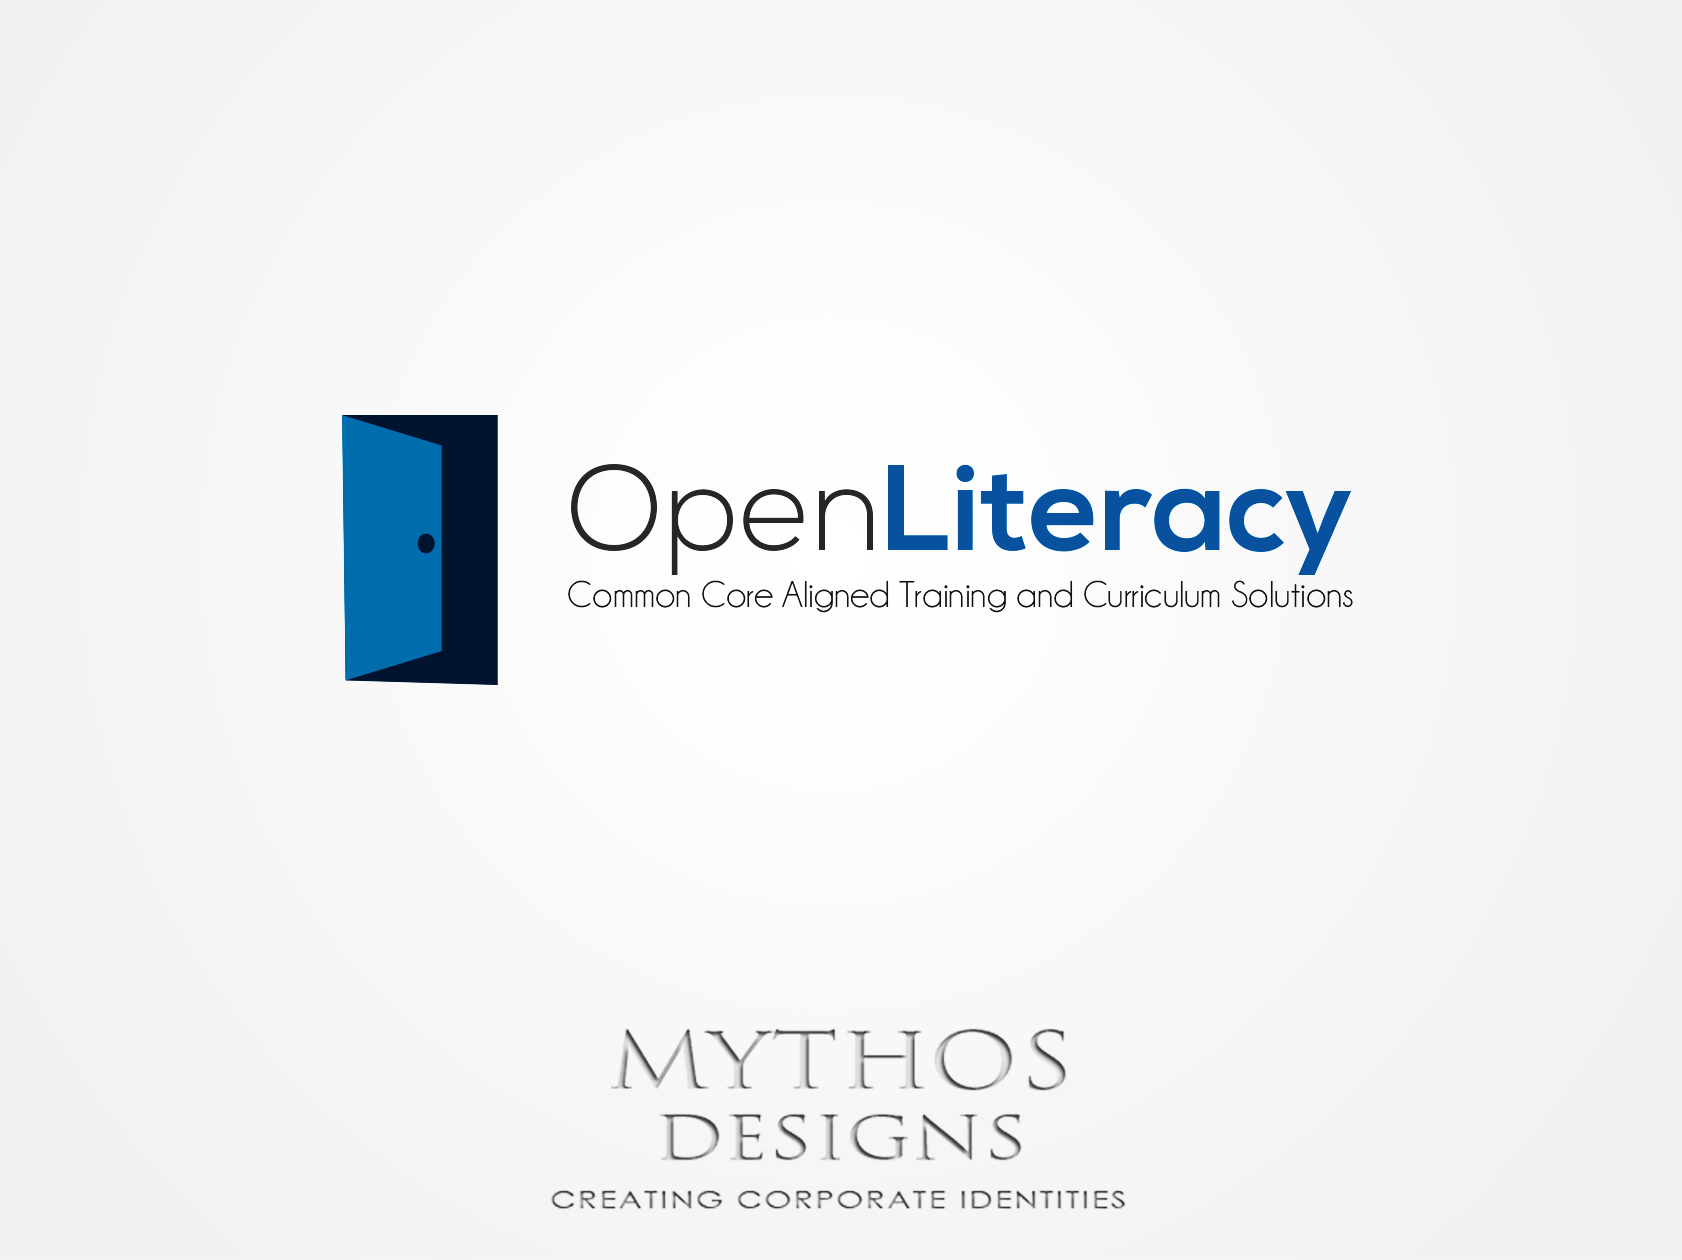 Logo Design by Mythos Designs - Entry No. 109 in the Logo Design Contest Inspiring Logo Design for OpenLiteracy.